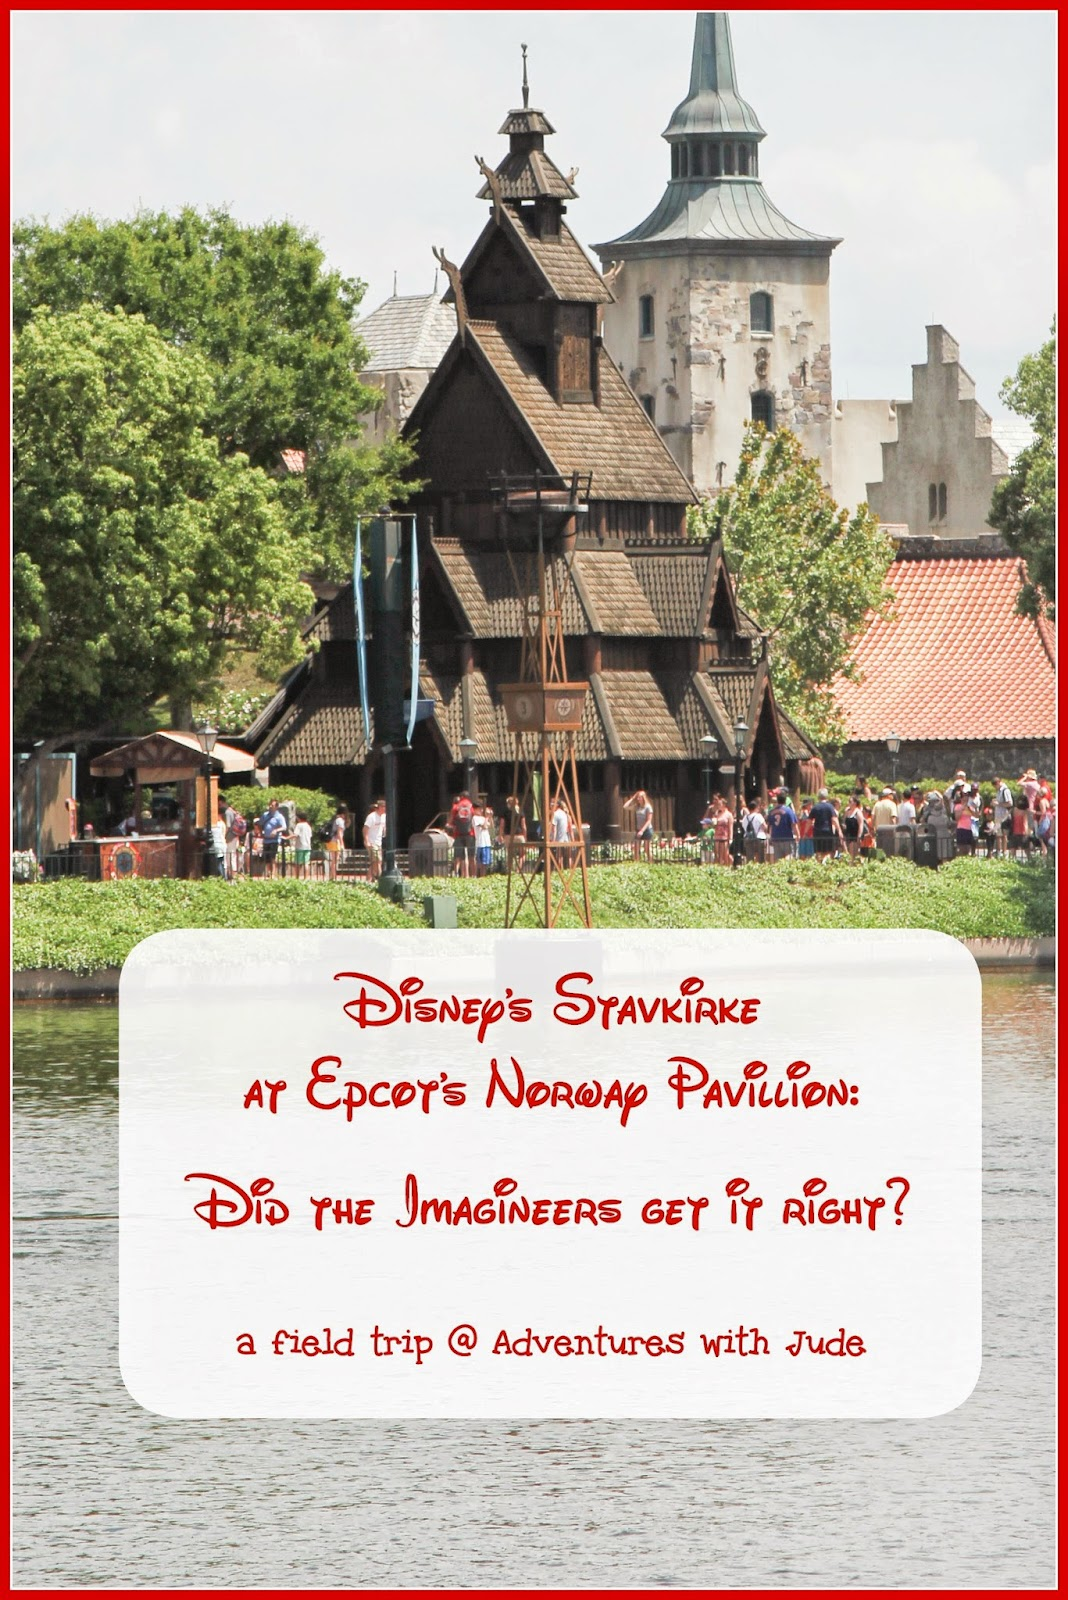 During the Middle Ages, over 1000 stavkirke, or Stave Churches, were built, and now less than 30 remain.  How well did Disney's Imagineers recreate the Stave Church in Epcot's Norway Pavillion?